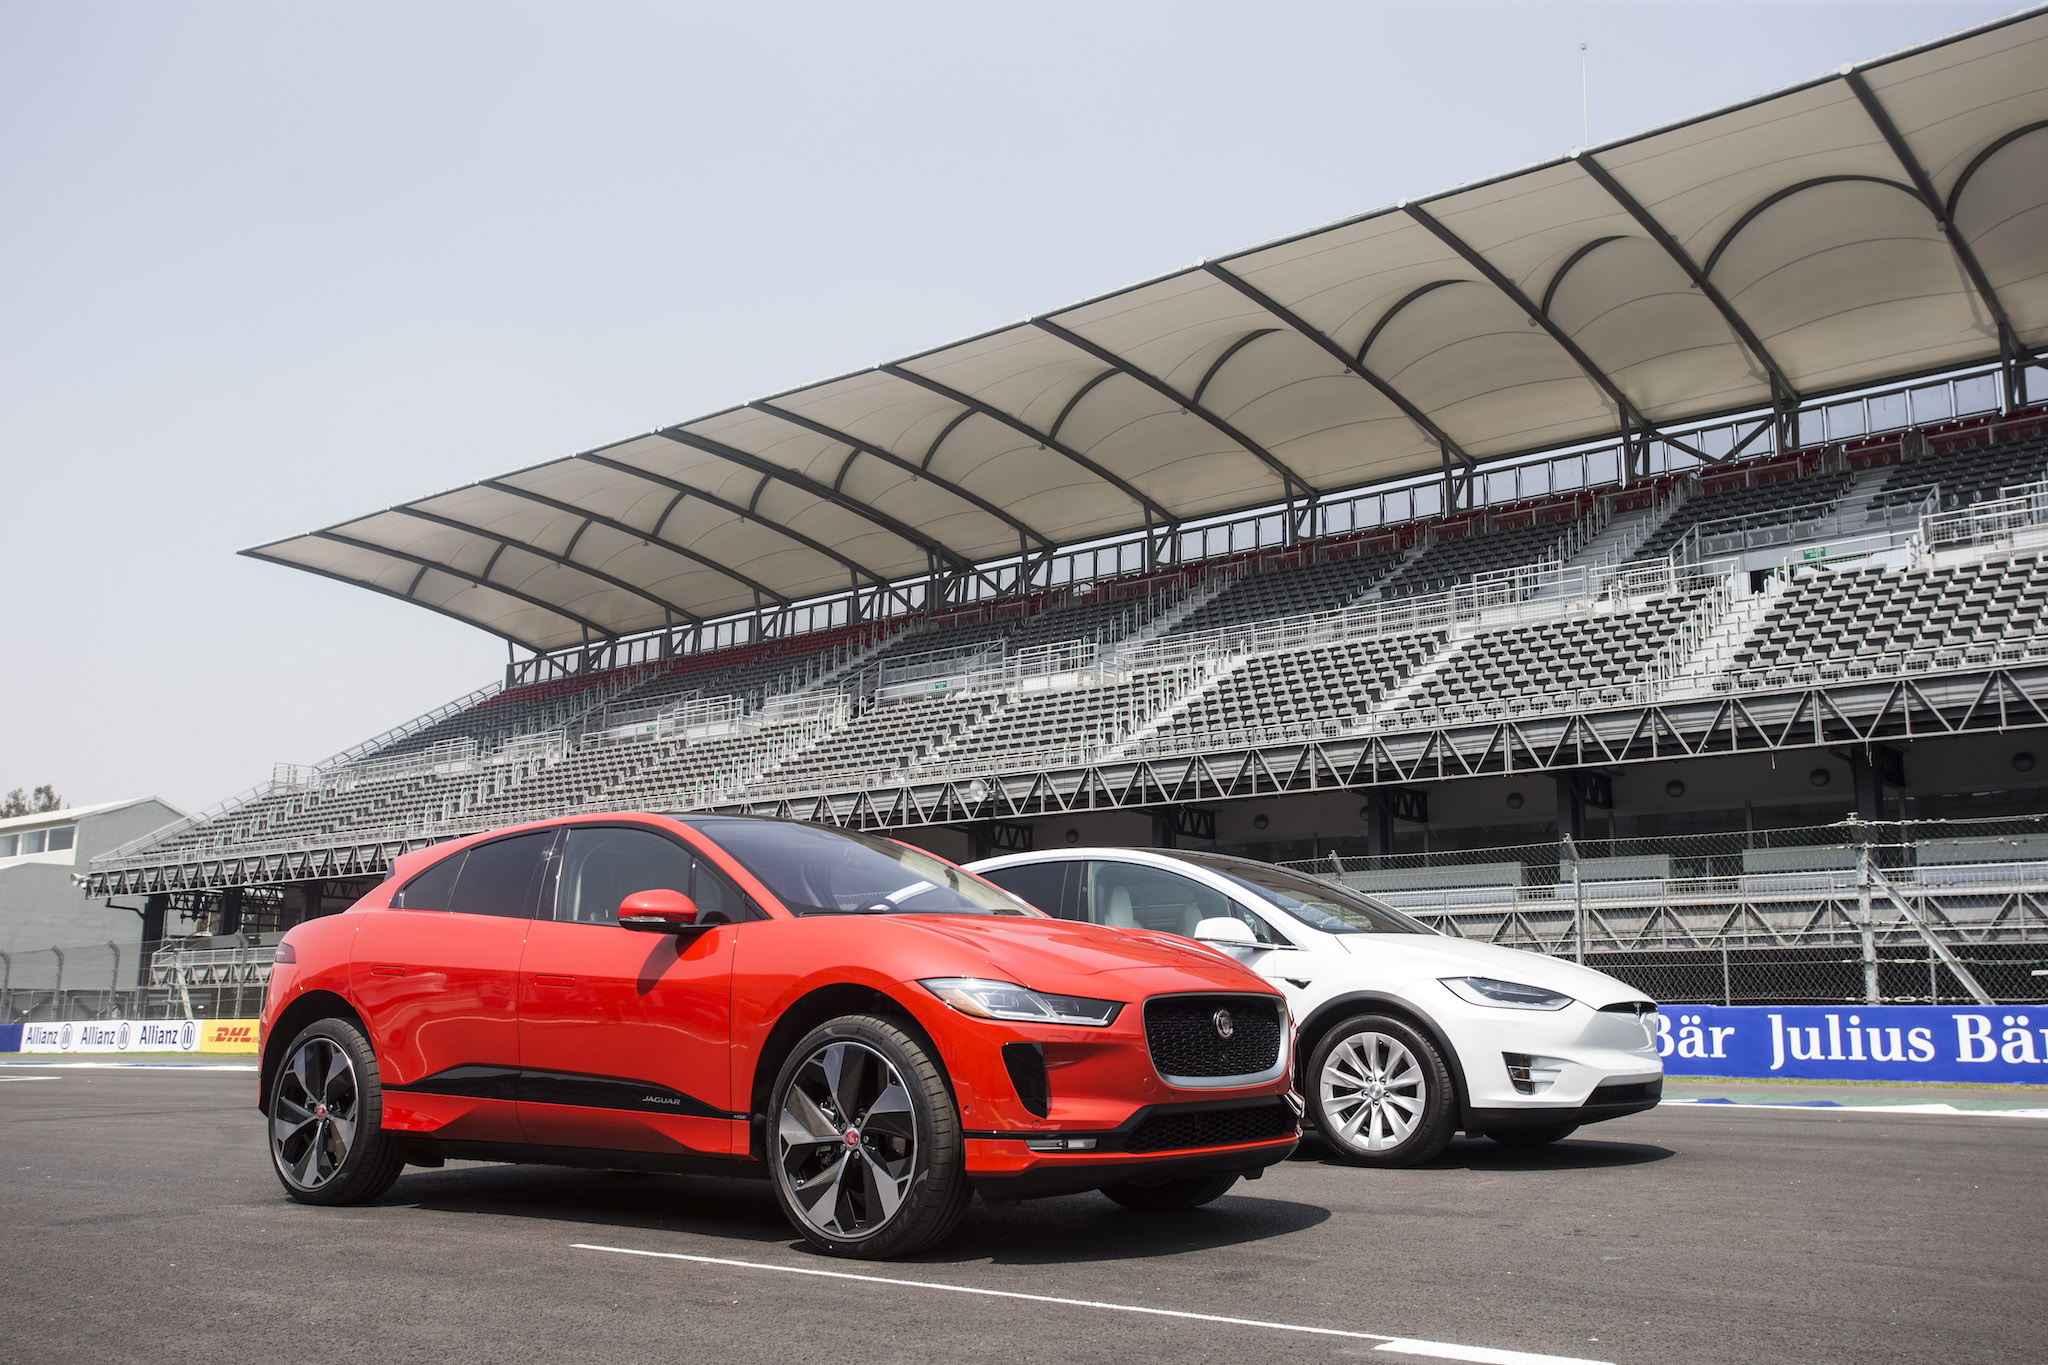 Electric cat: Jaguar stalks Tesla with $70,000 I-Pace SUV | Ars Technica